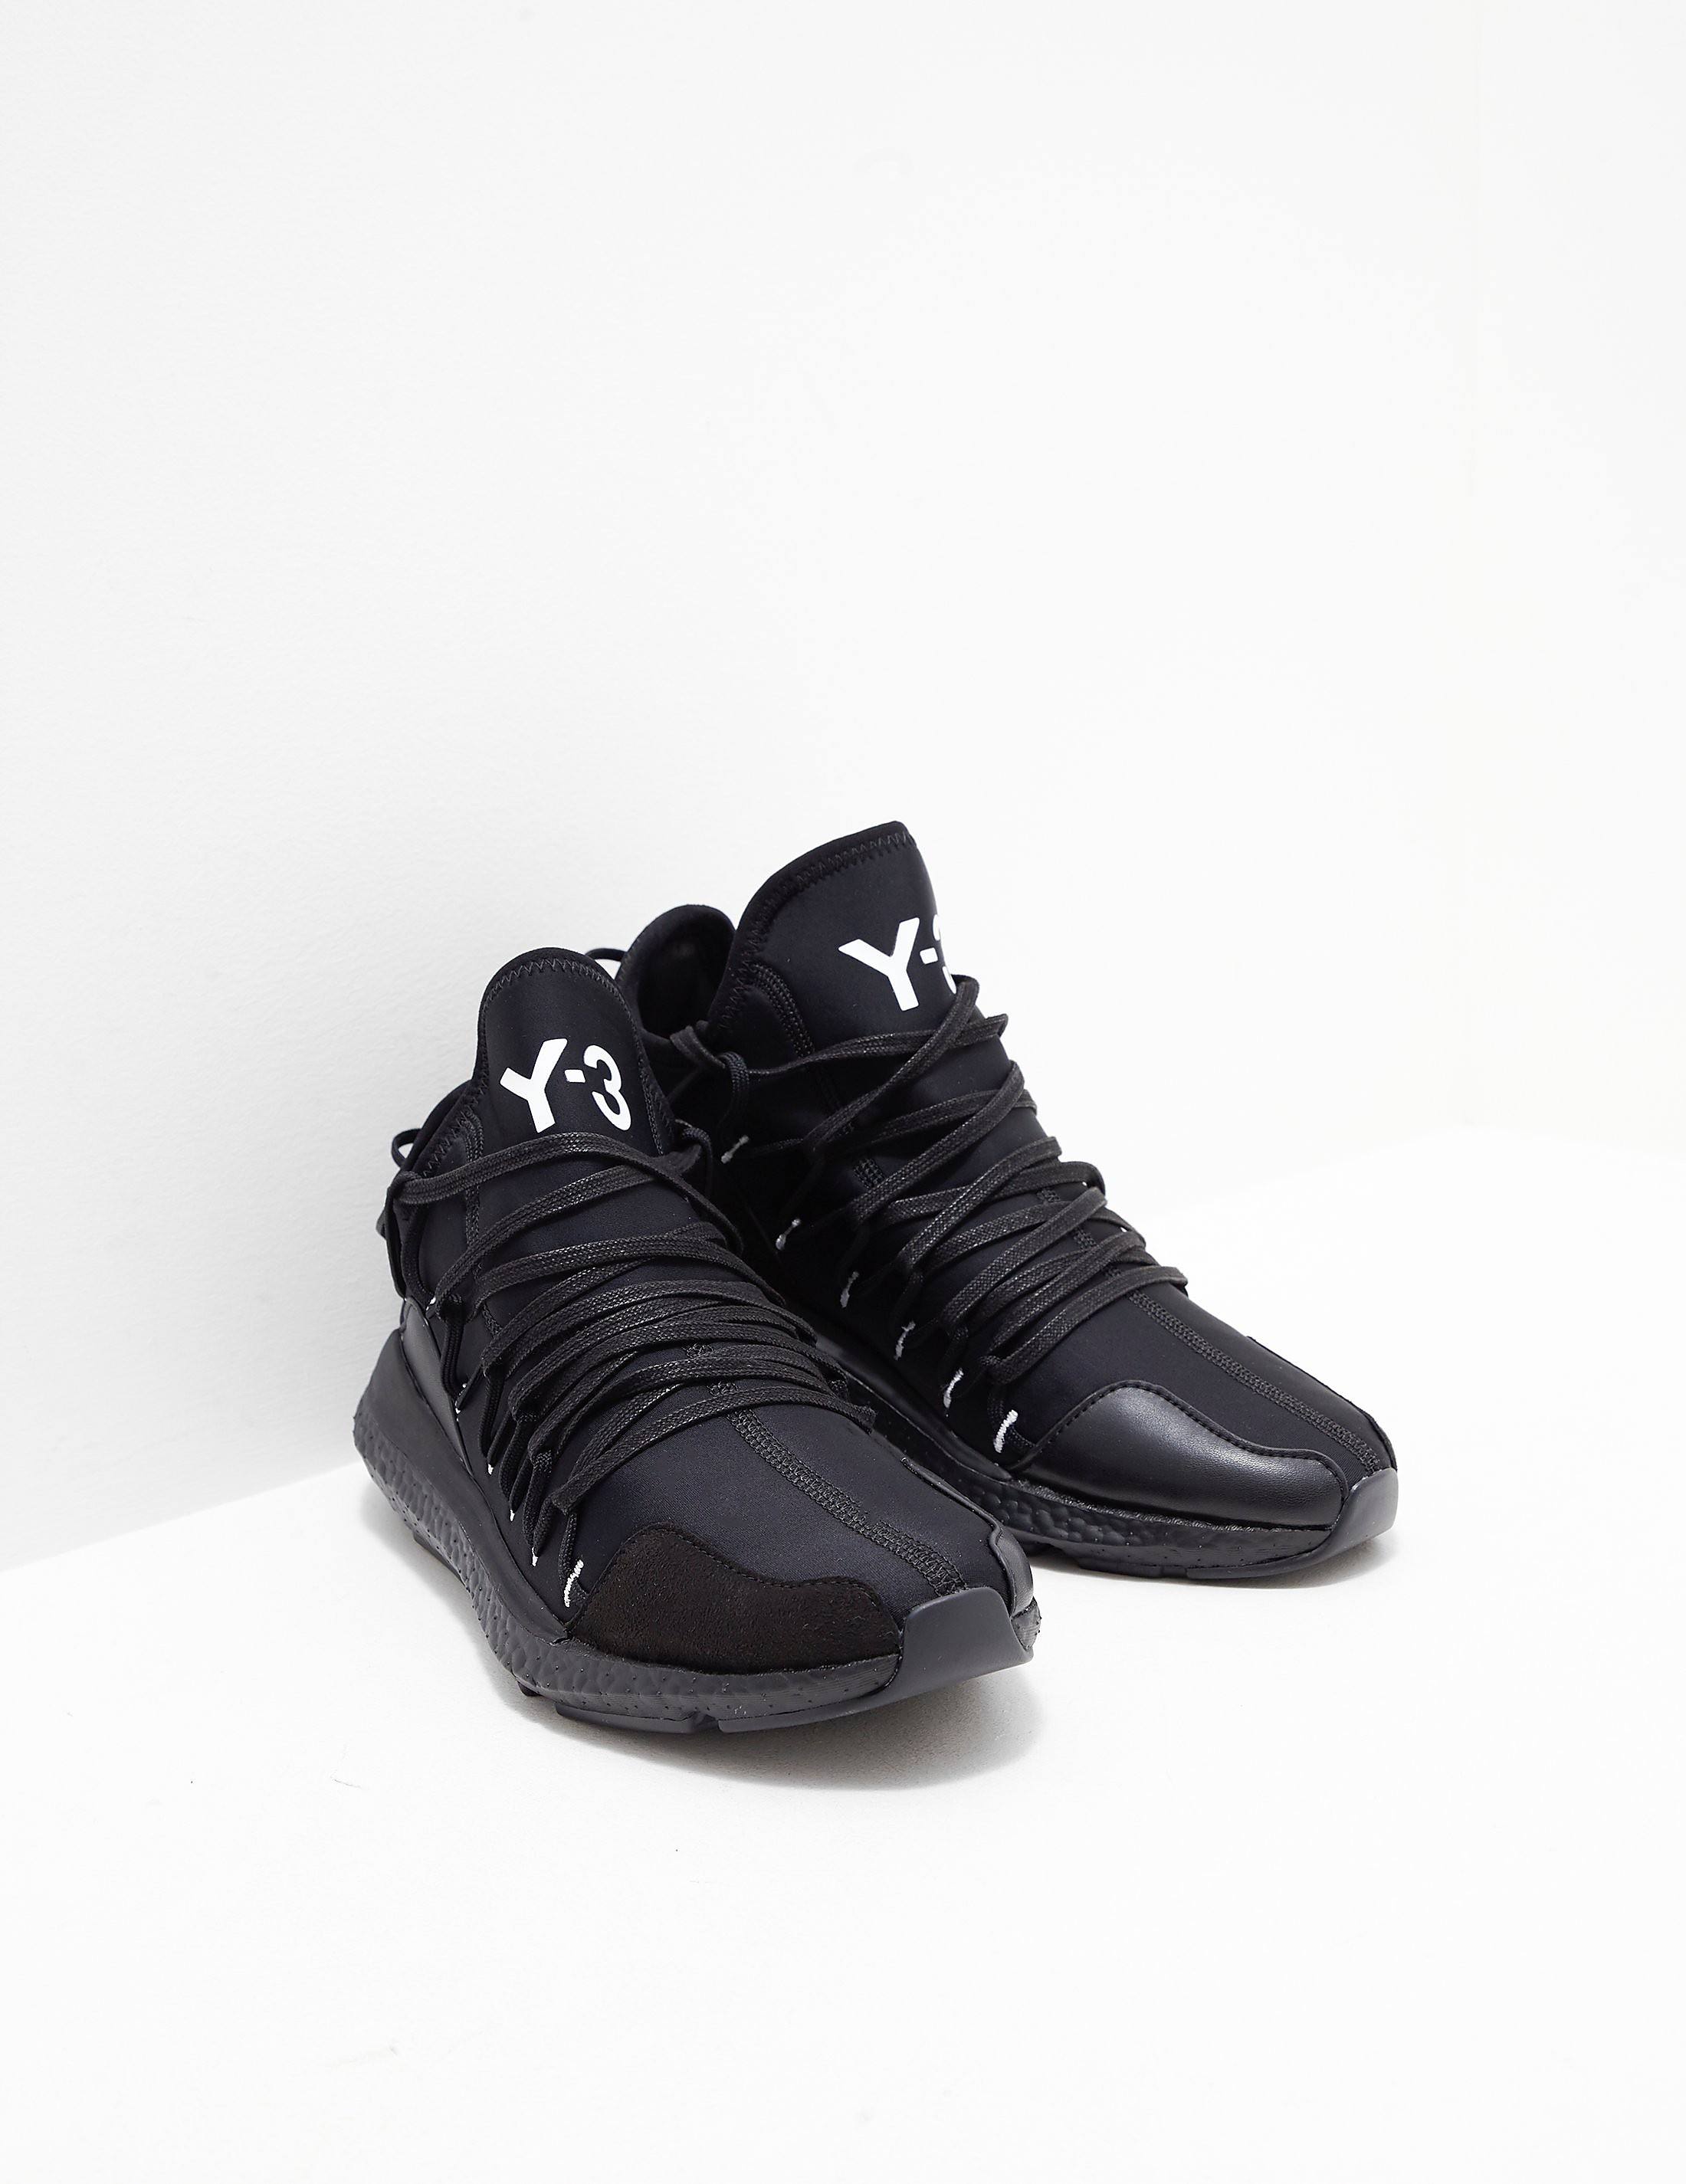 c50f1802a076a Mens Y-3 Kusari Trainers Black